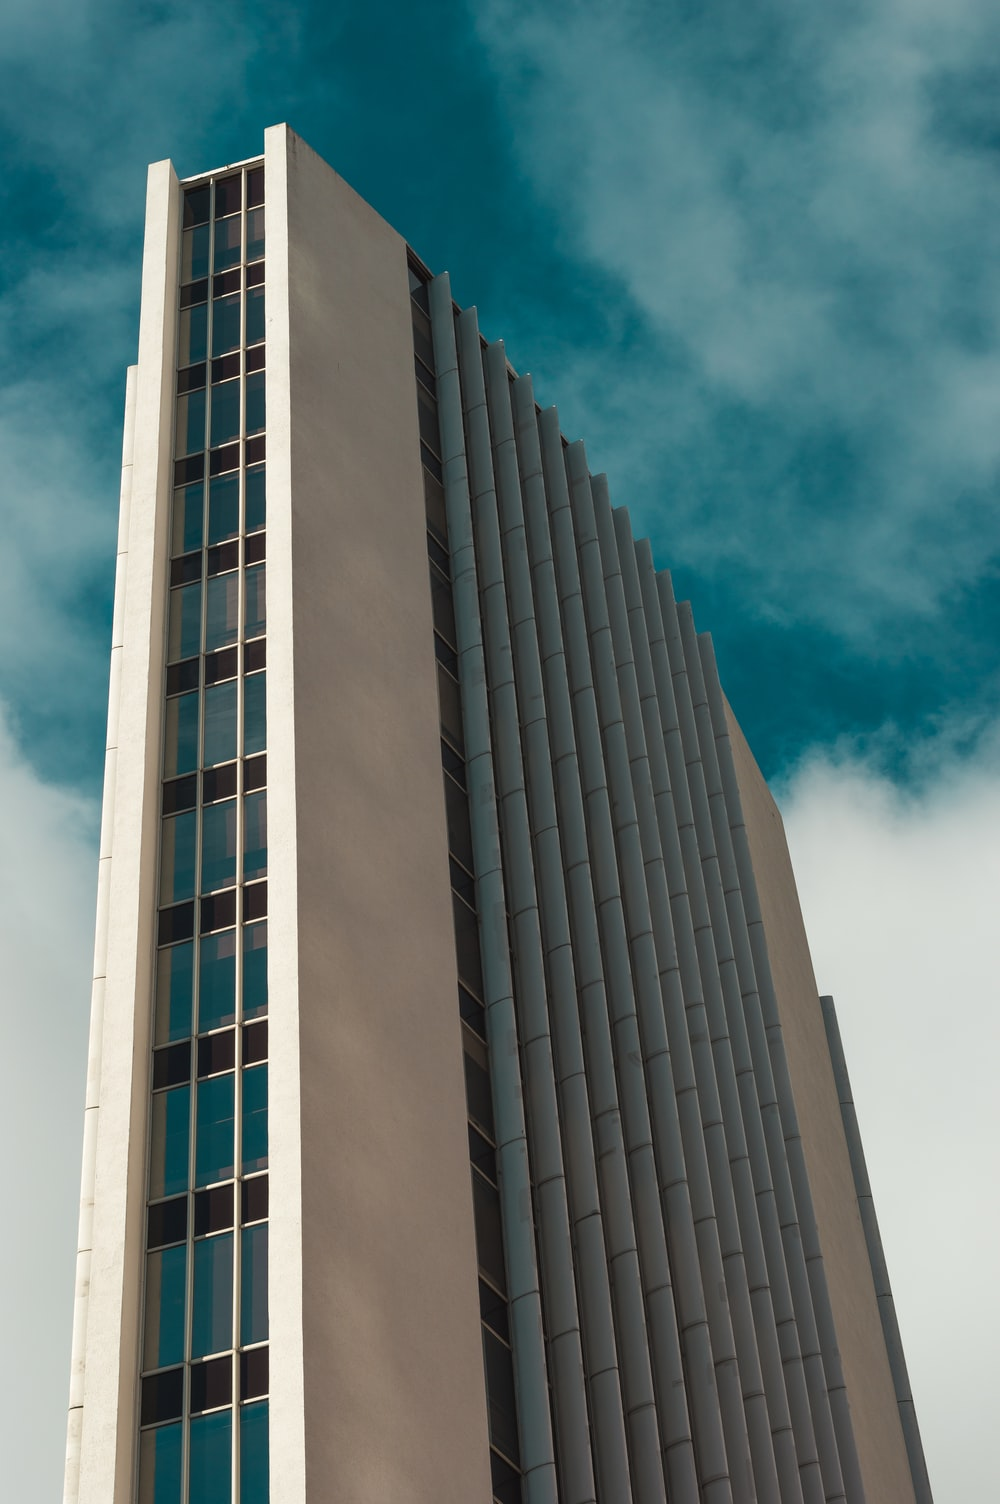 low angle photography of multi-story high rise building during daytime